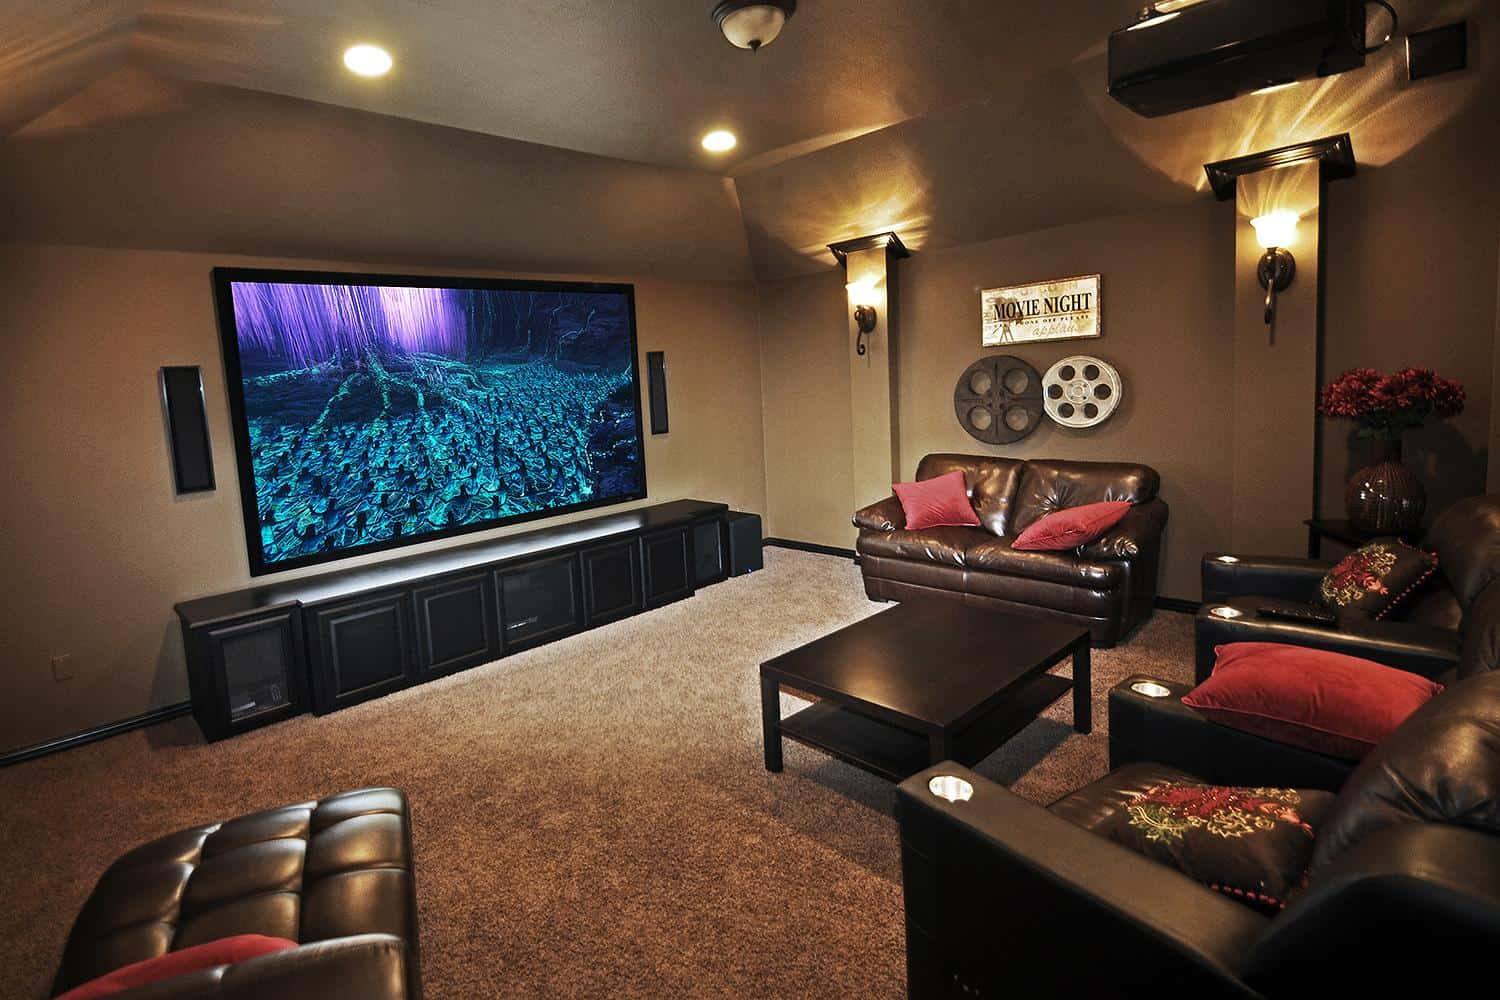 How to make home theater room - Home Theater Lighting